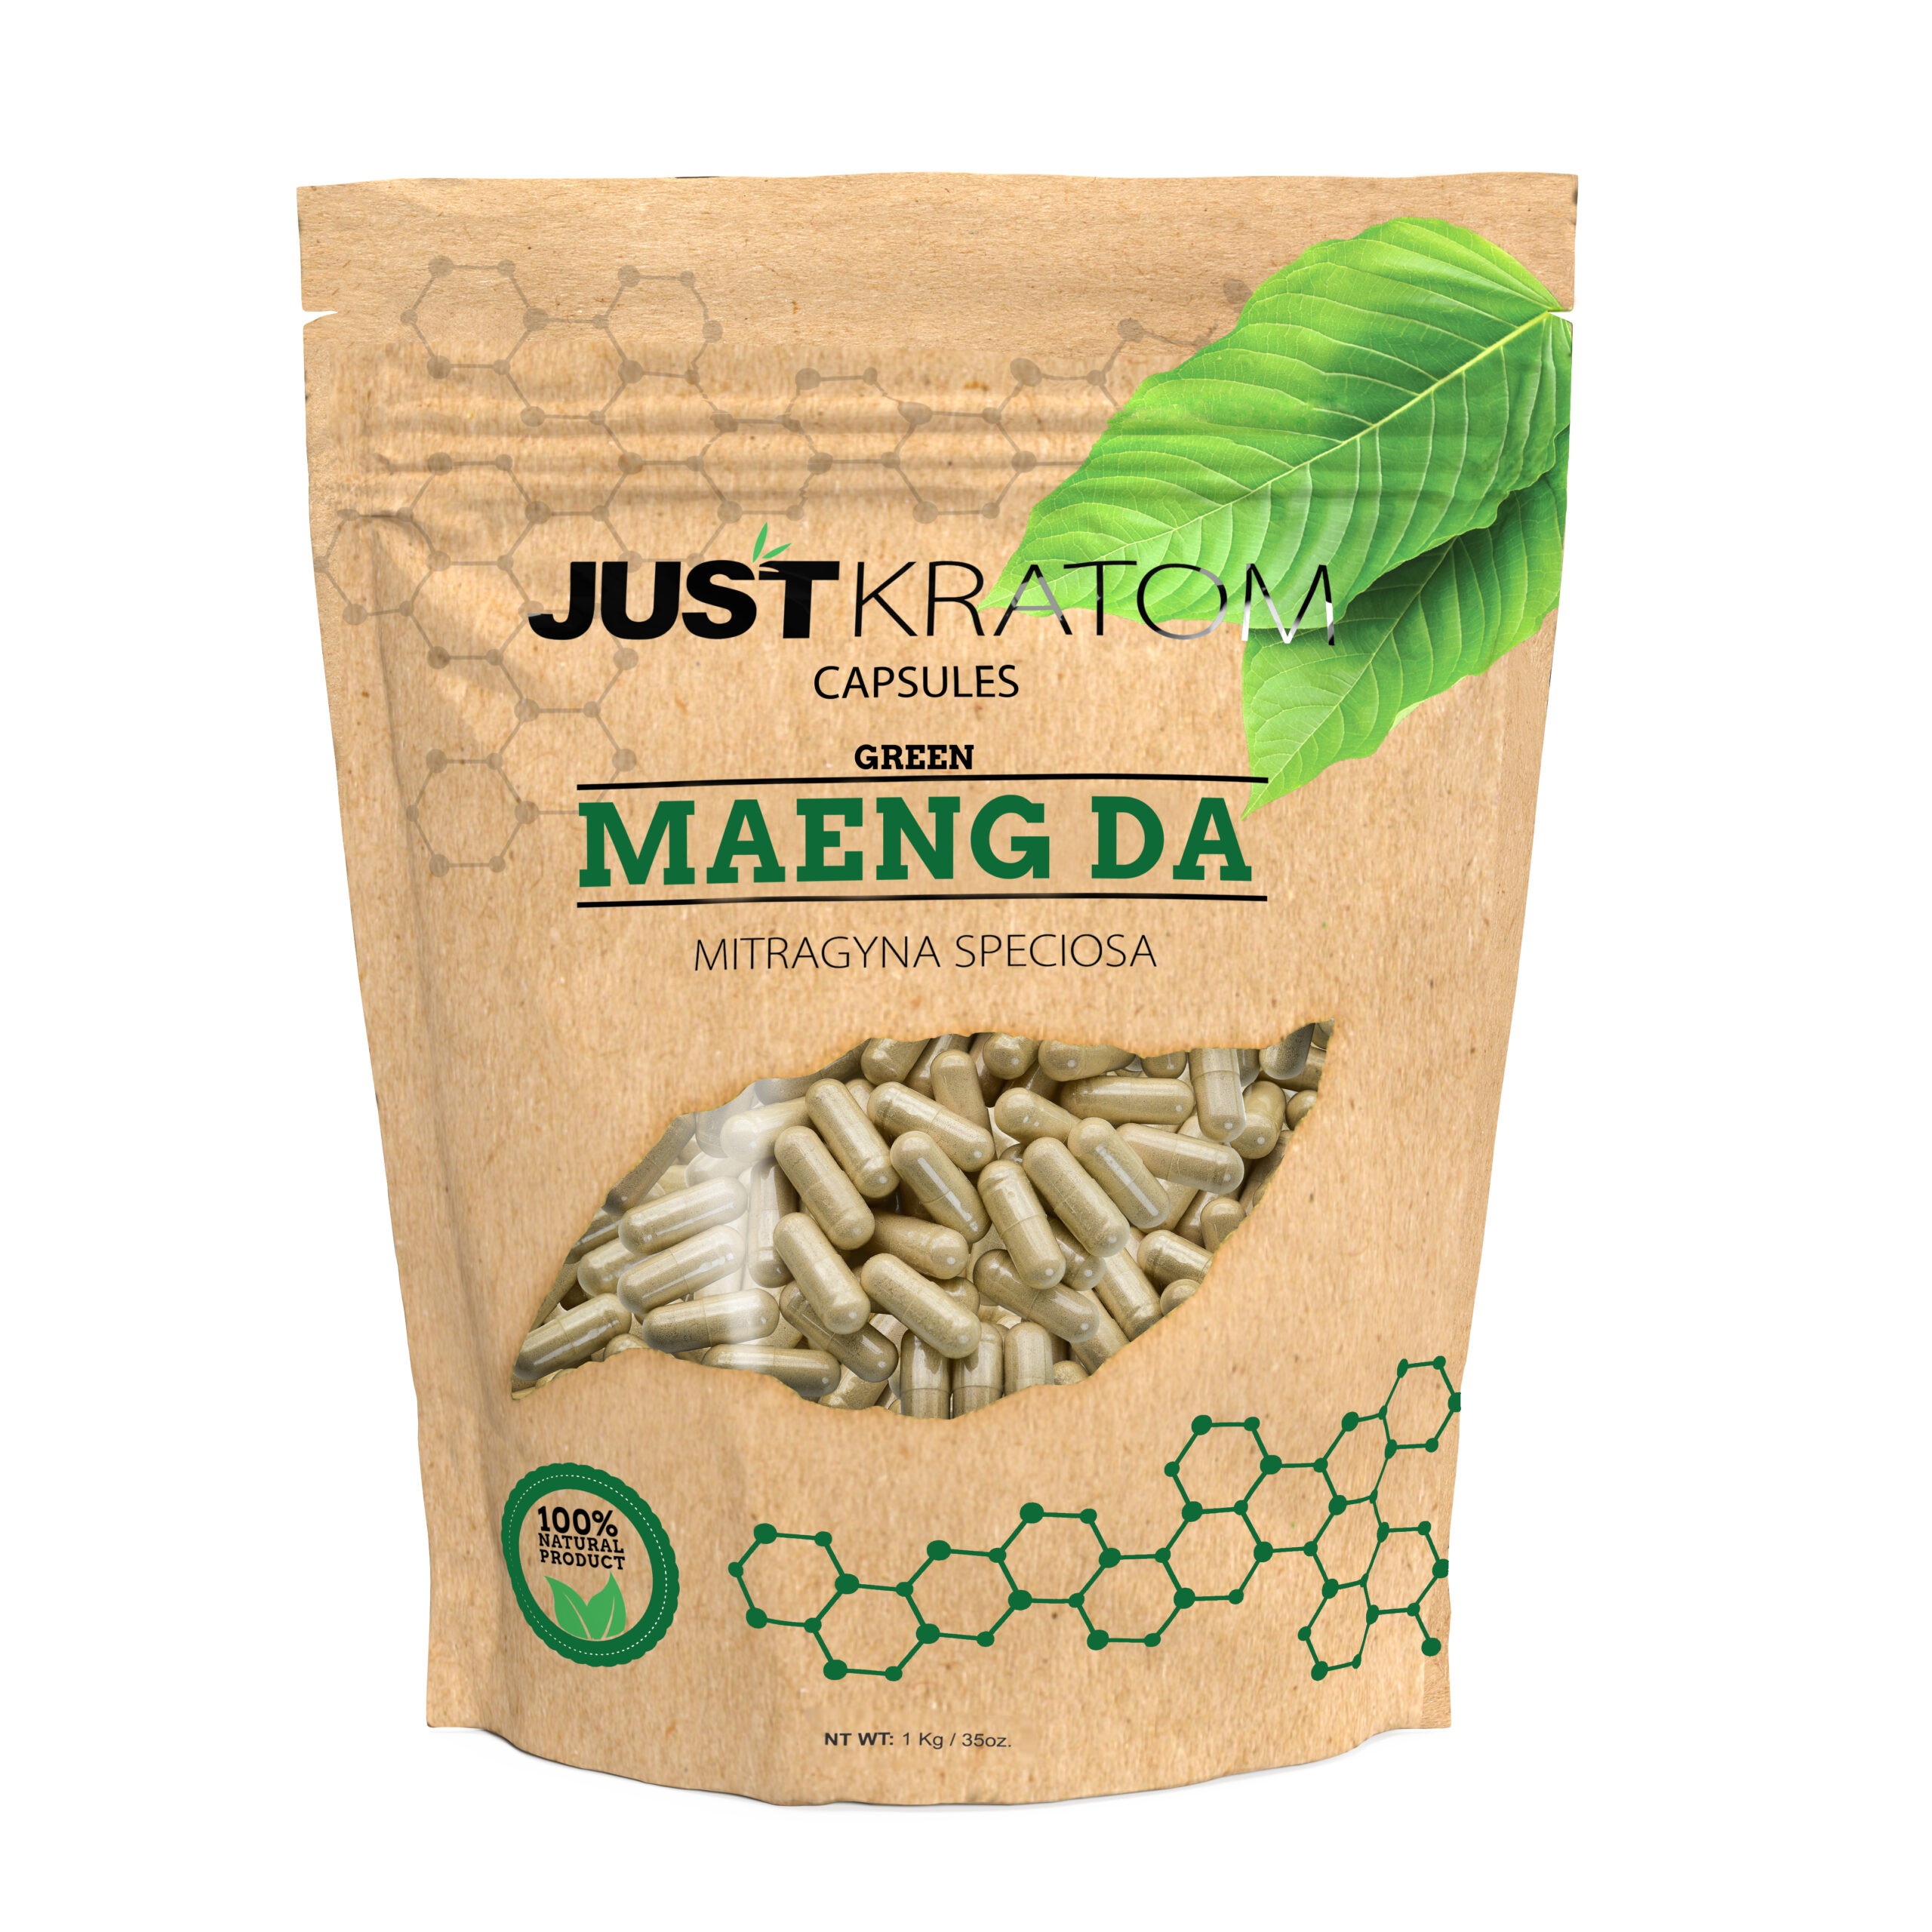 What Does Burning Kratom Mean